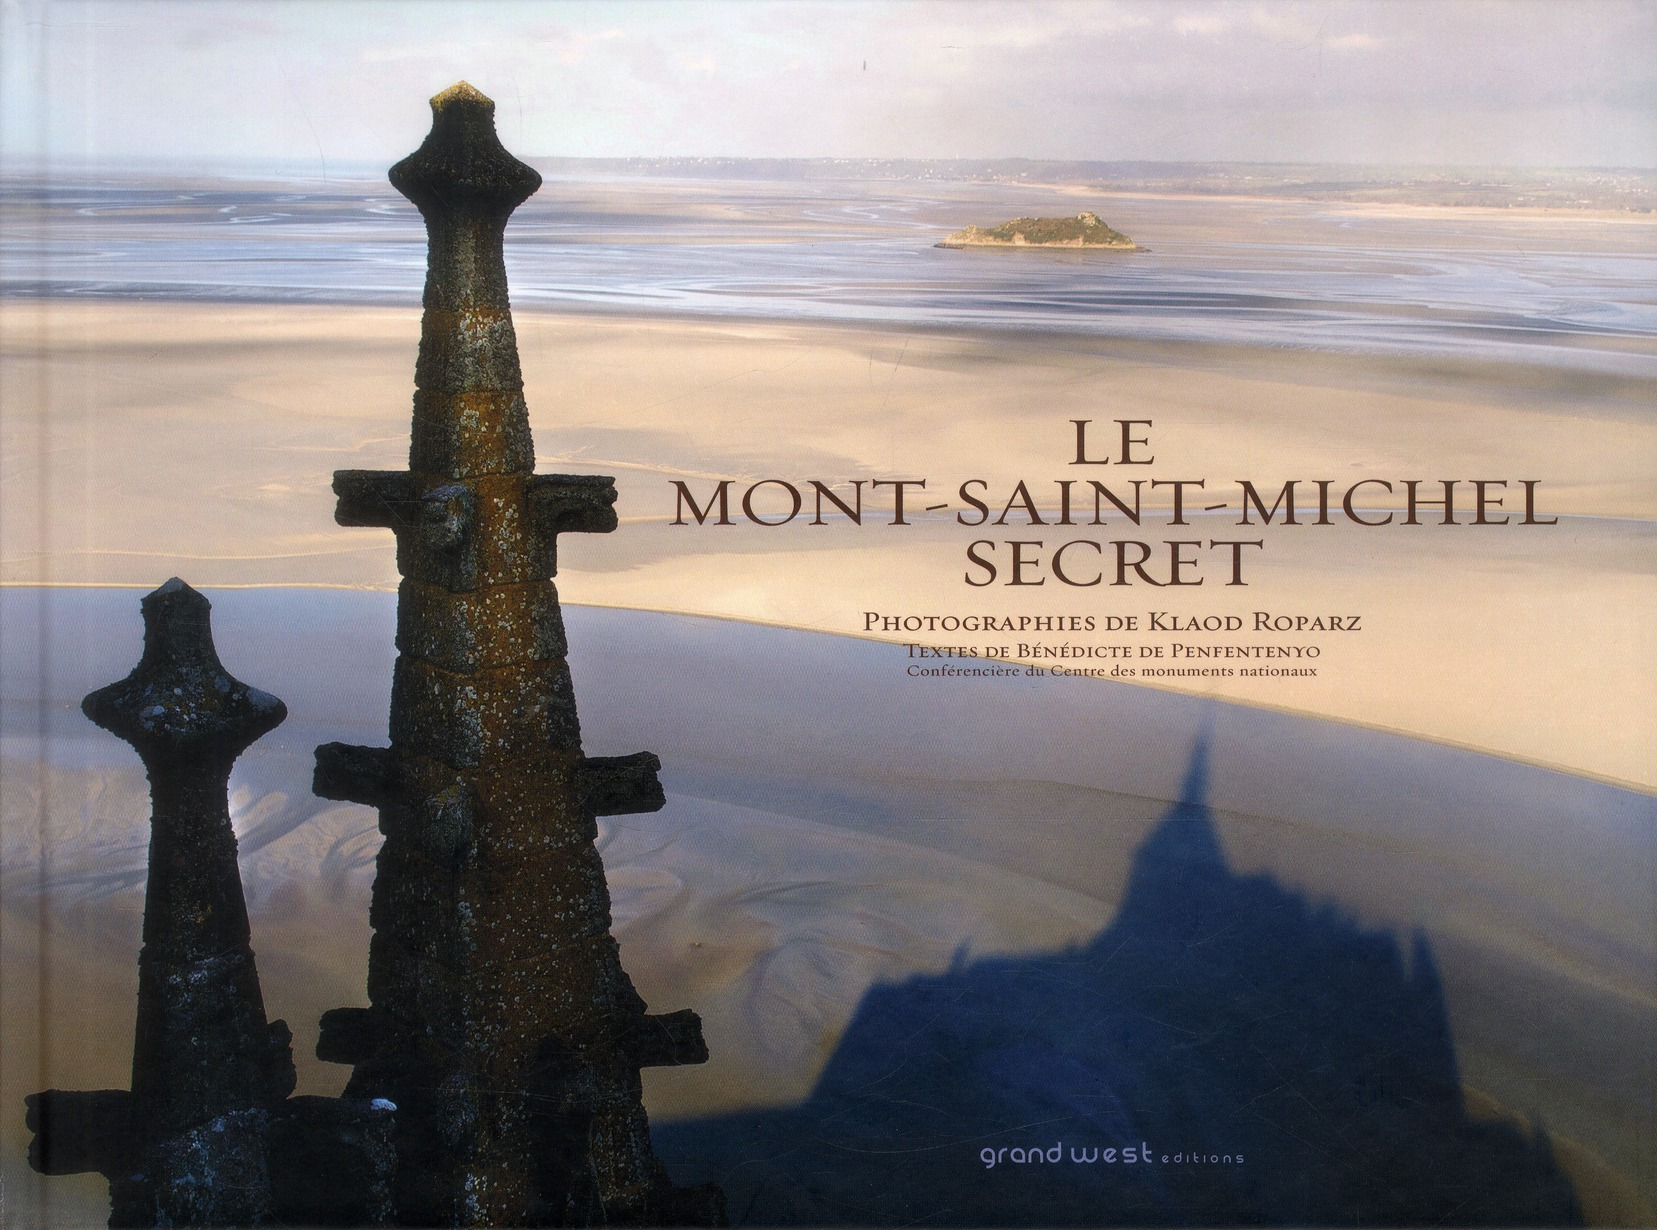 LE MONT-SAINT MICHEL SECRET